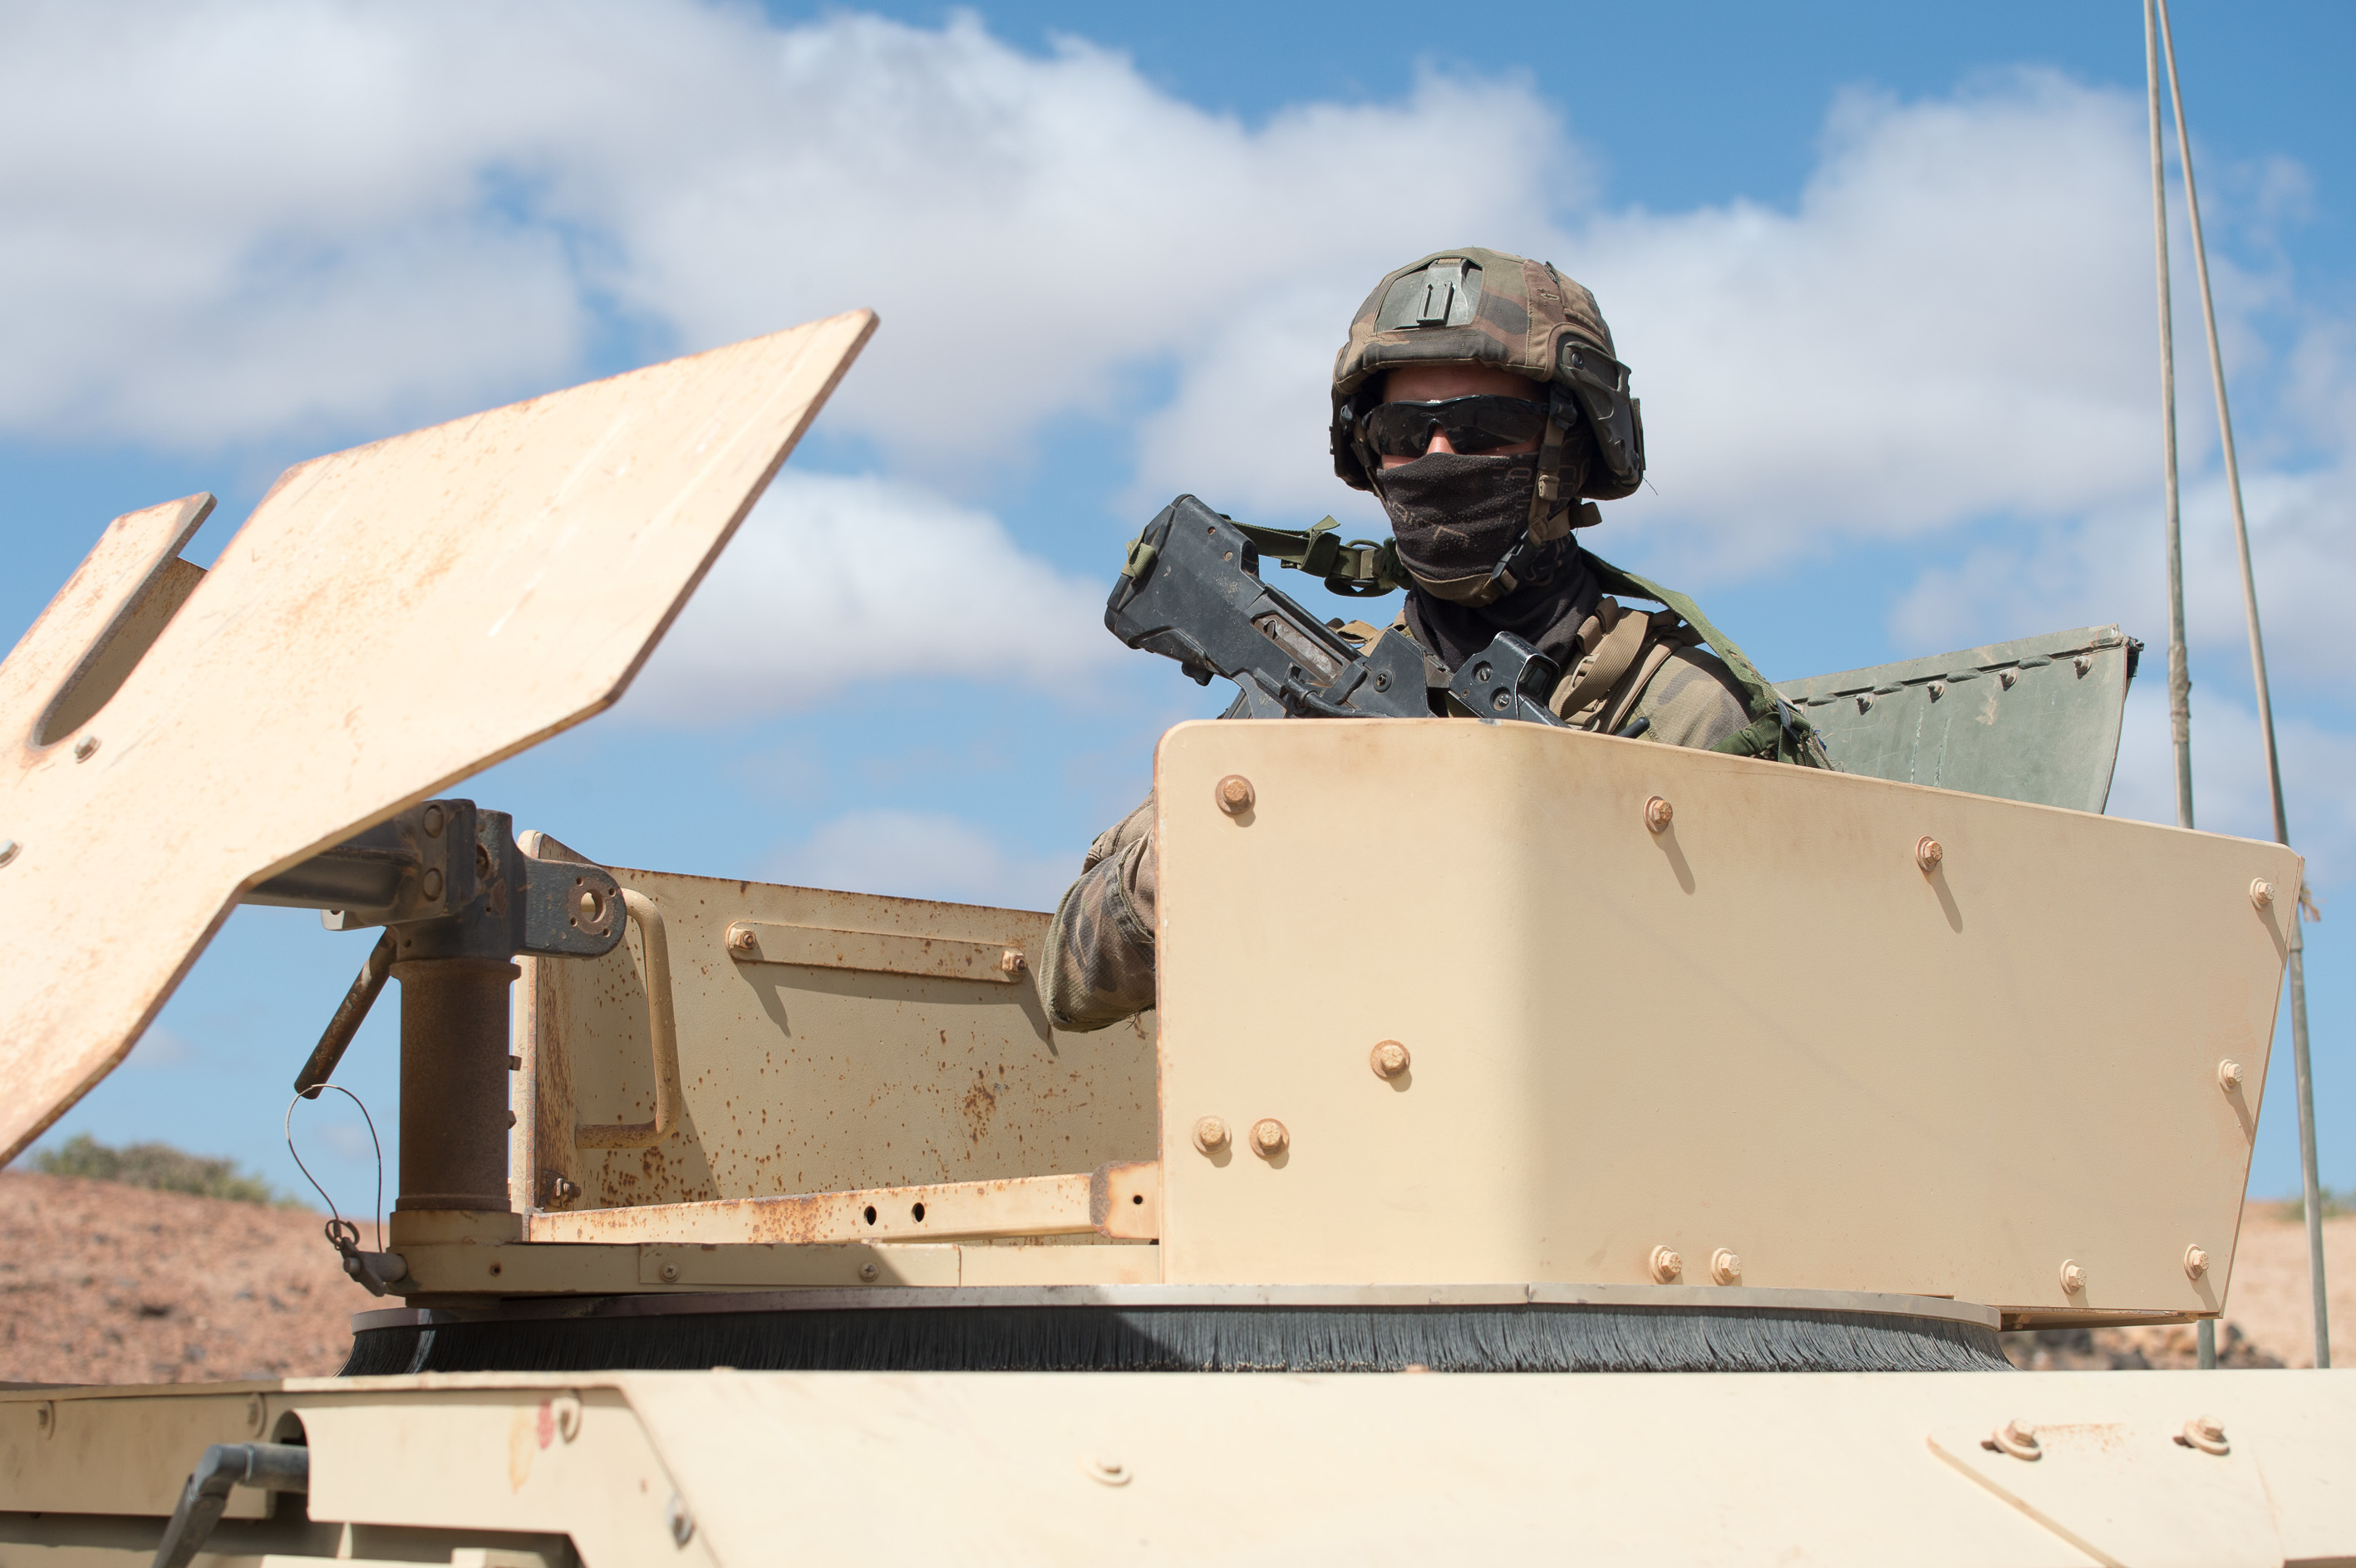 A French army soldier looks out of a U.S. Humvee during a French Desert Commando Course in Arta, Djibouti, May 15, 2019. The course is a premiere French training event designed to develop each soldier's ability to perform mounted missions in a desert environment, and develop individual Soldier mountaineering and water confidence. (Courtesy Photo)